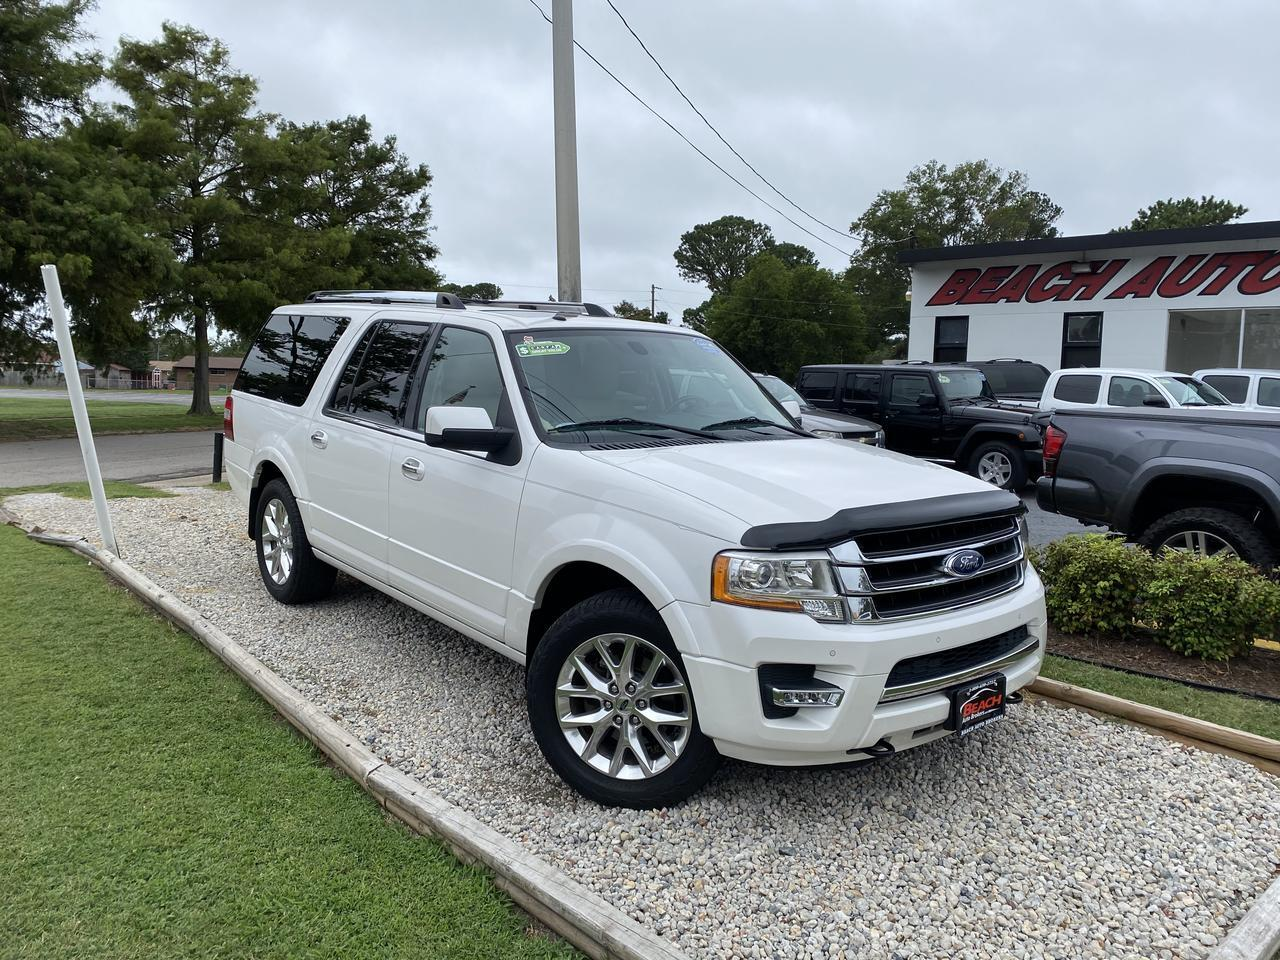 2015 FORD EXPEDITION LIMITED 4X4, WARRANTY, LEATHER, SUNROOF, NAV, HEATED/COOLED SEATS, 3RD ROW, LOW MILES! Norfolk VA